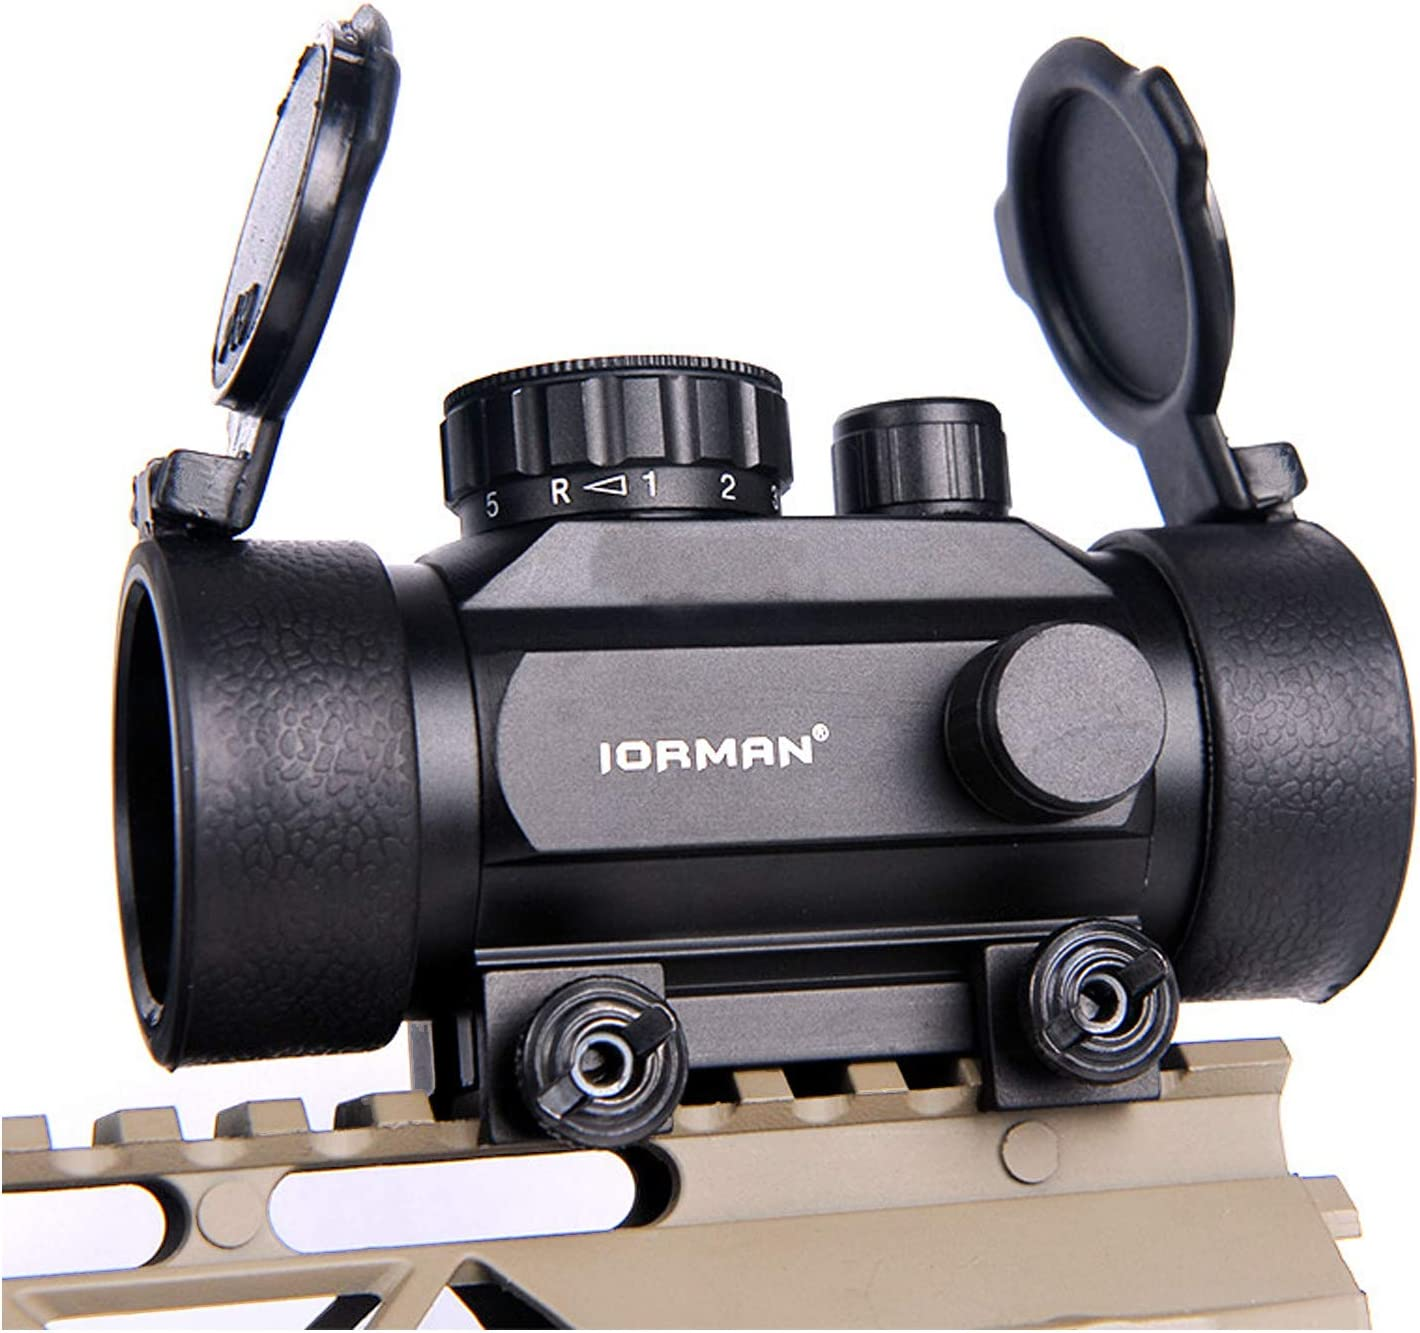 Hunting Luxury goods Rifle Crossbow Popular Sights Red Sight Green Dot 0 Scope